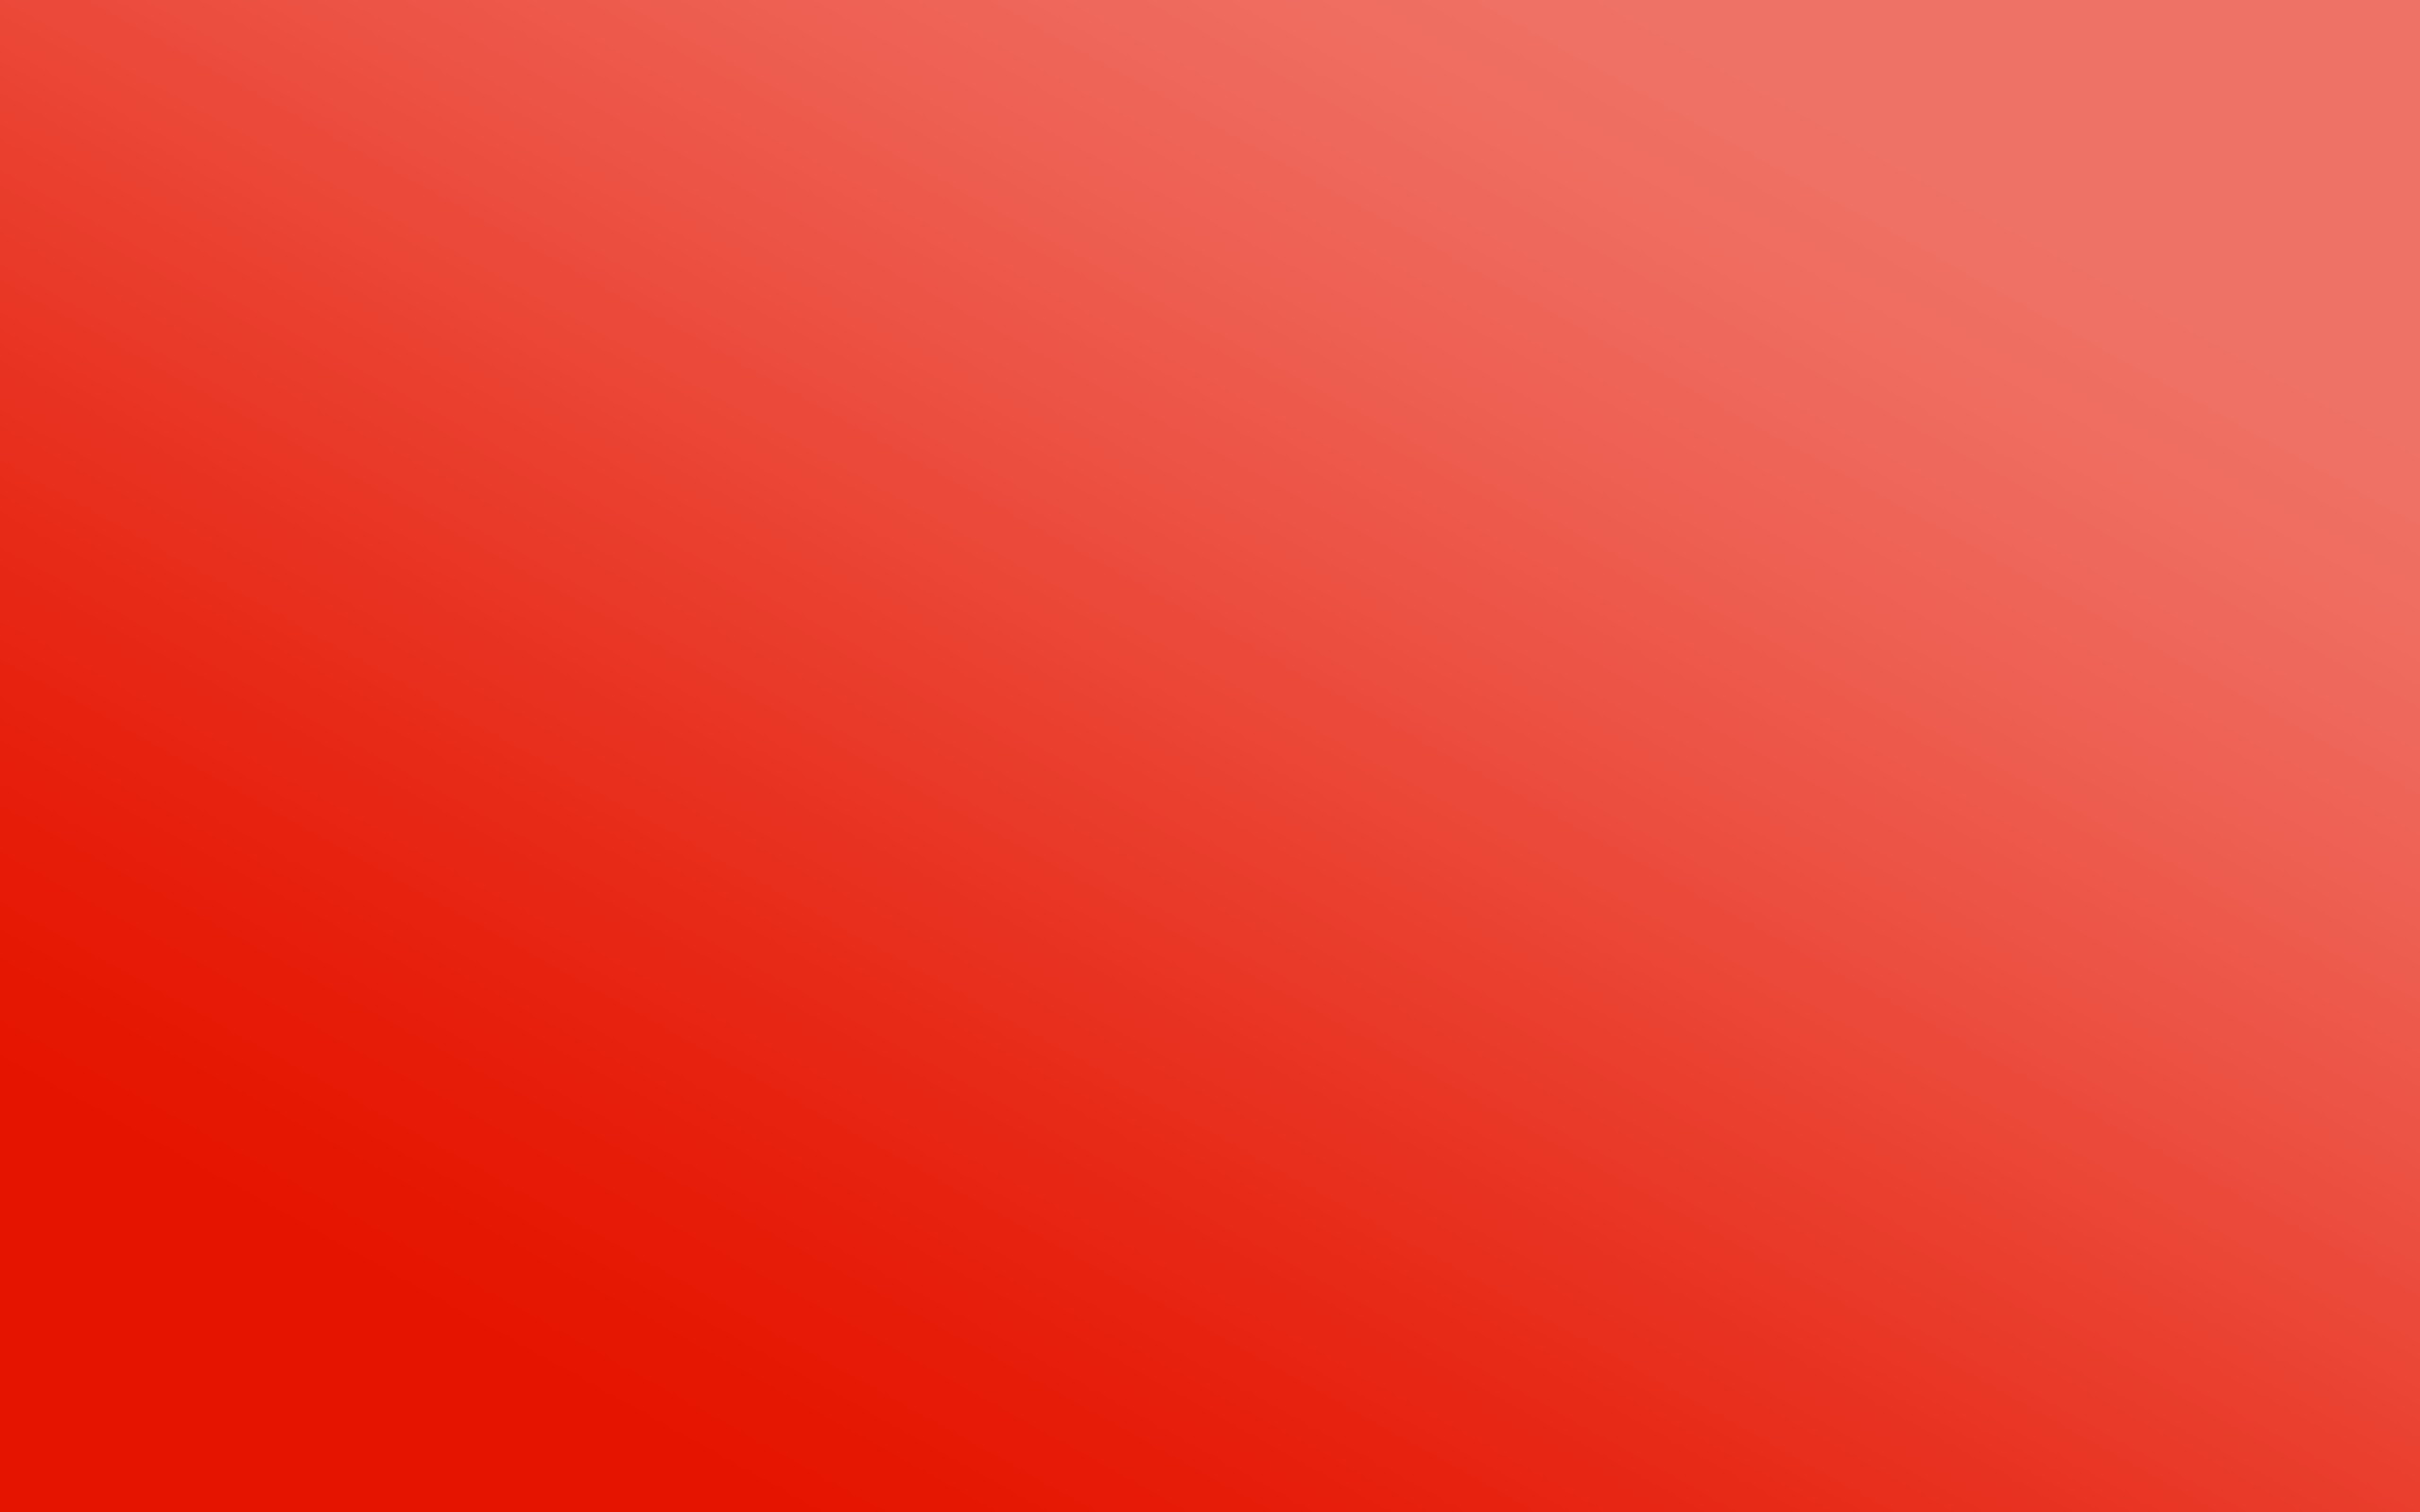 Solid Color Red Background